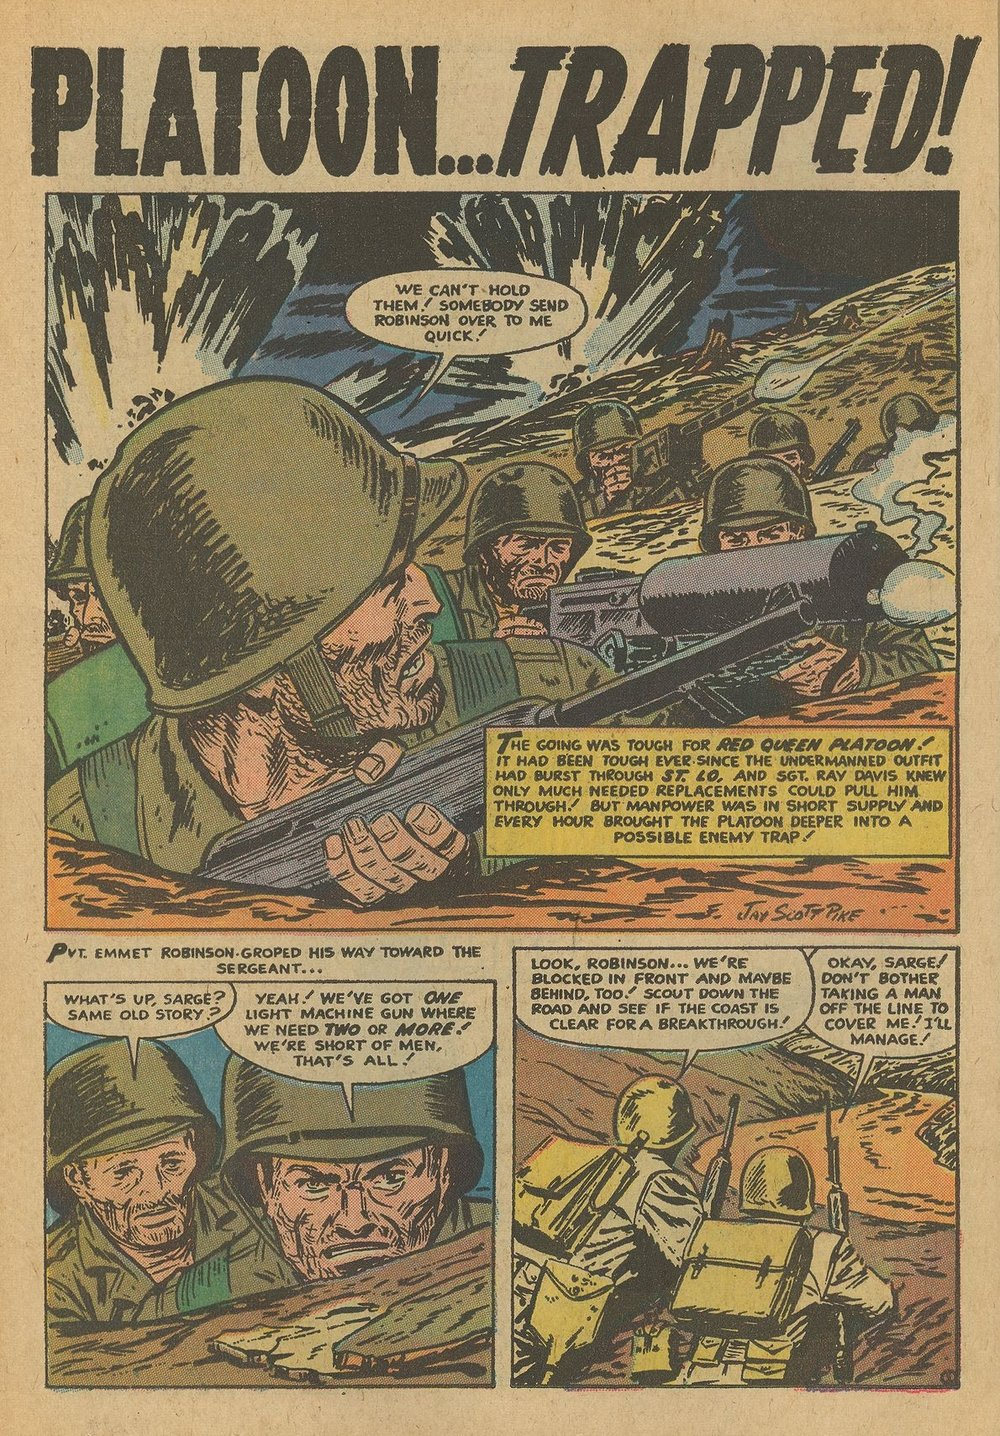 "Battleground (1954) #18, interior story ""Platoon Trapped"" - penciled & inked by Jay Scott Pike."